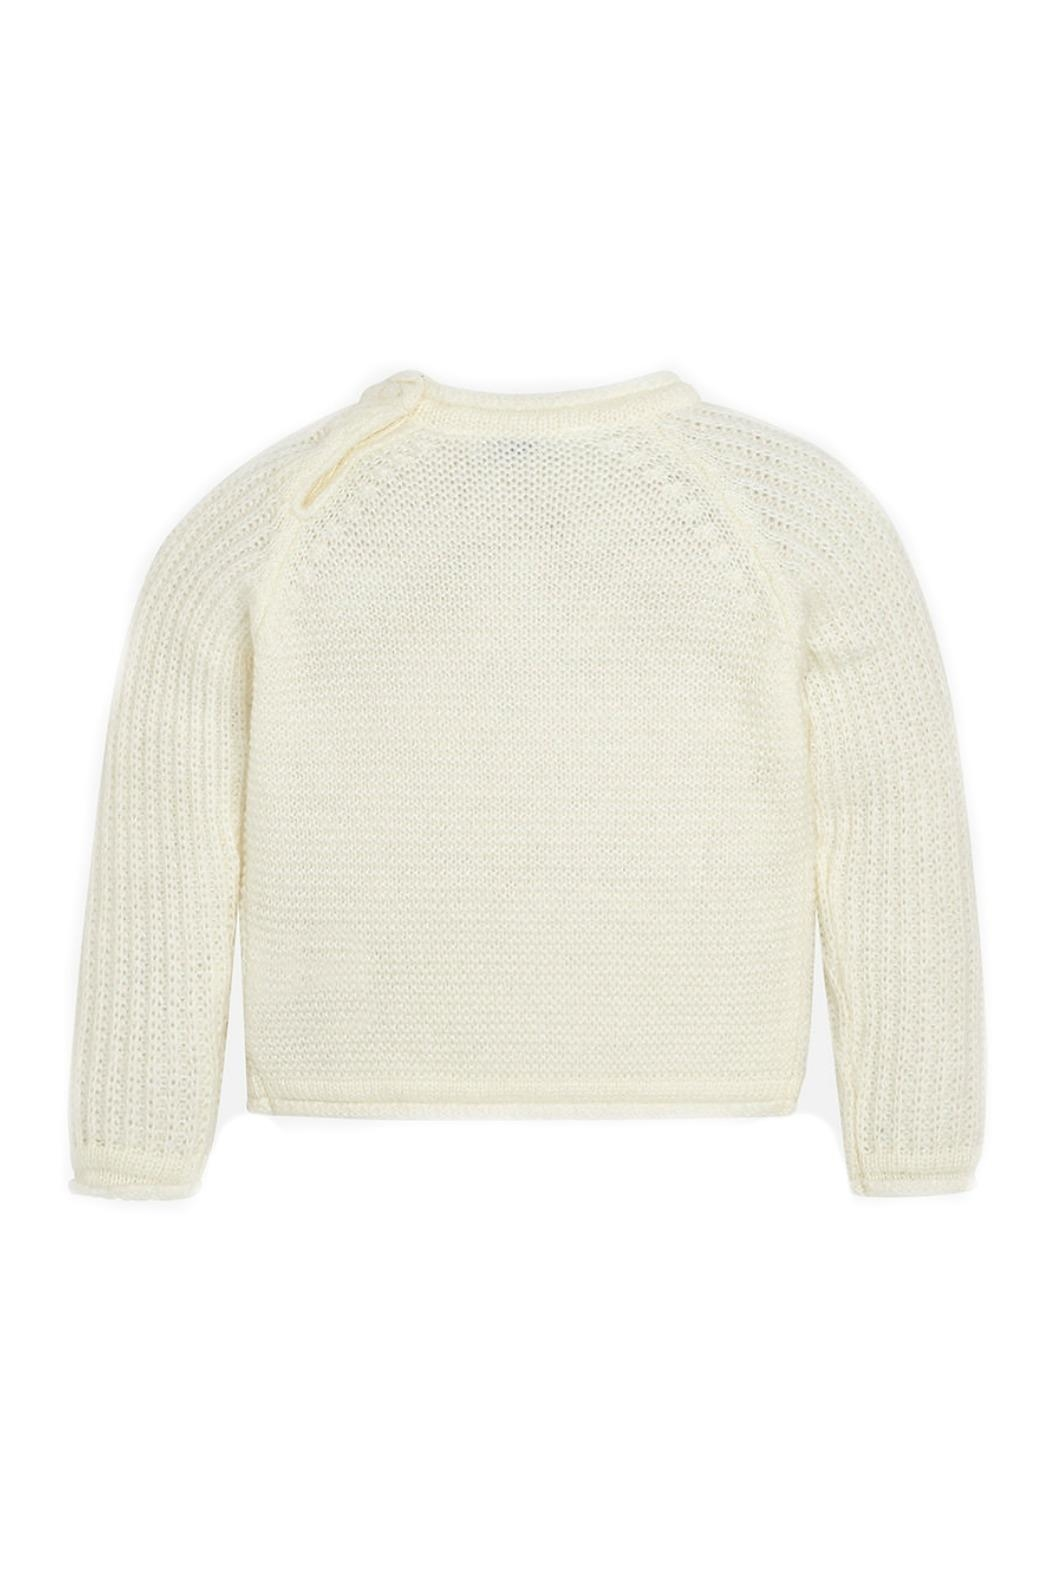 Mayoral Off-White-Embroidered-Daisy-Accent-Knit-Sweater - Front Full Image